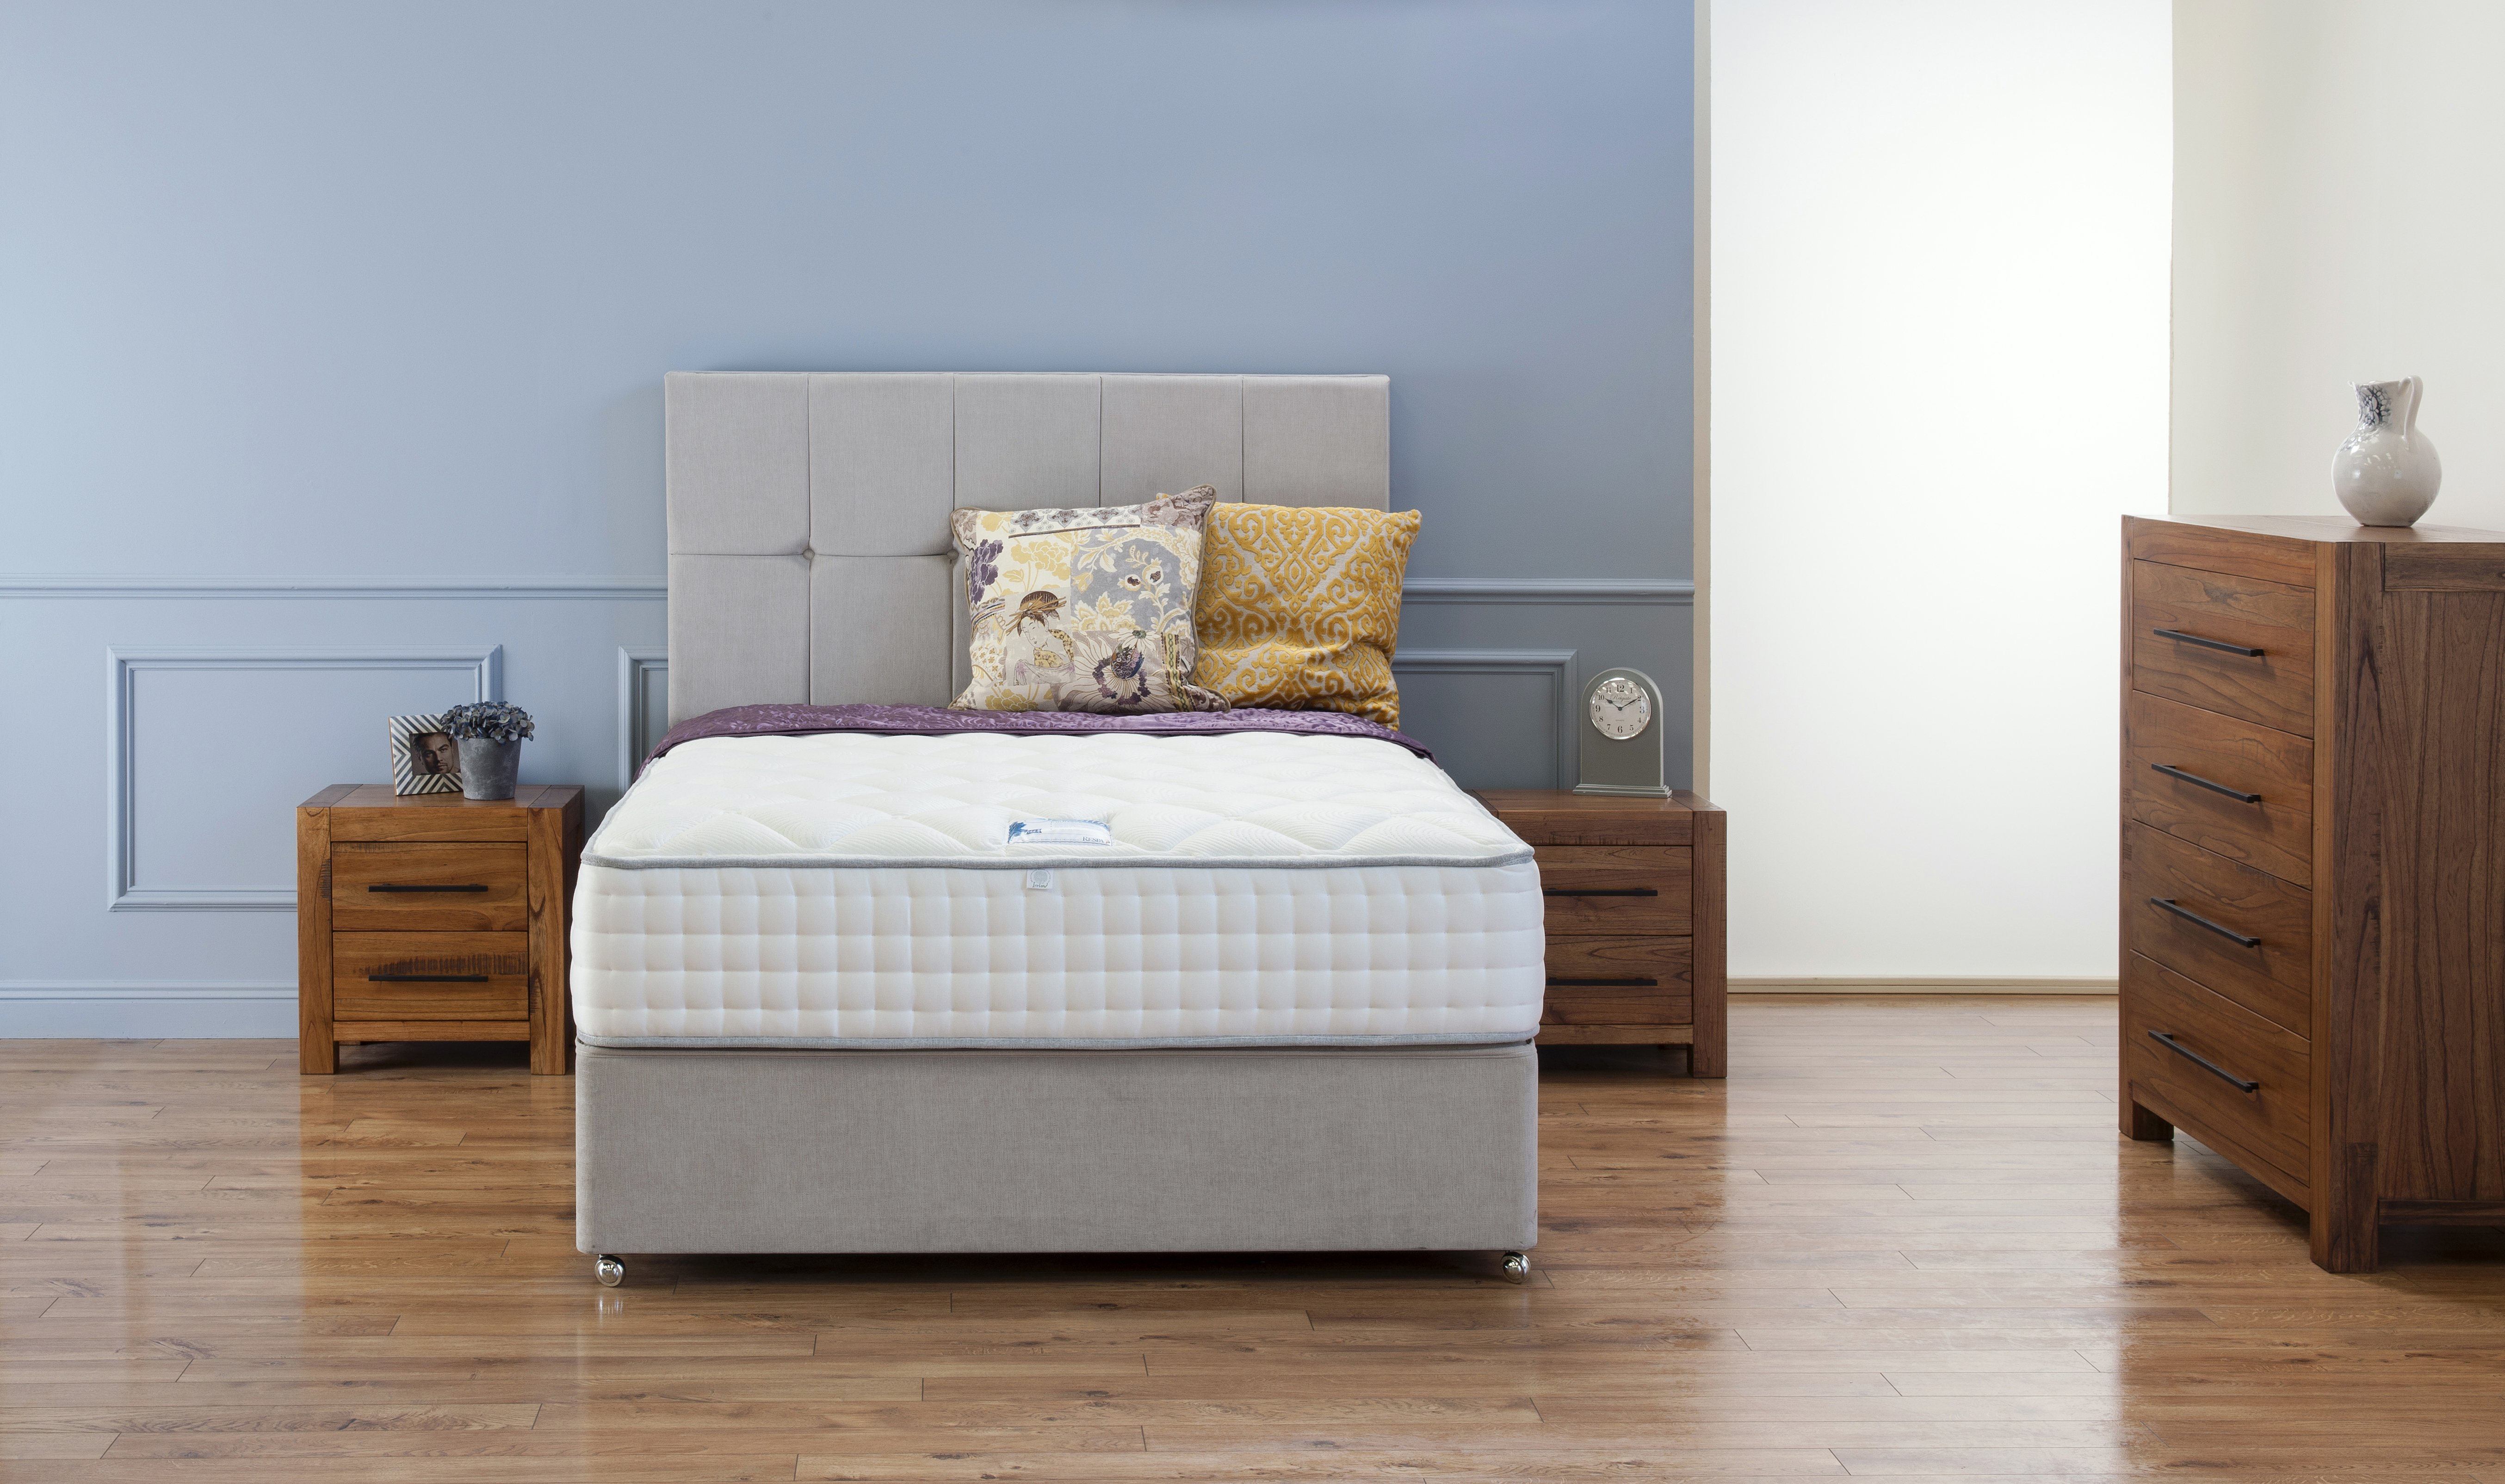 Bedroom Furniture Belfast S L Furniture  Bedroom Furniture Belfast   piazzesi us. Second Hand Bedroom Furniture Belfast. Home Design Ideas